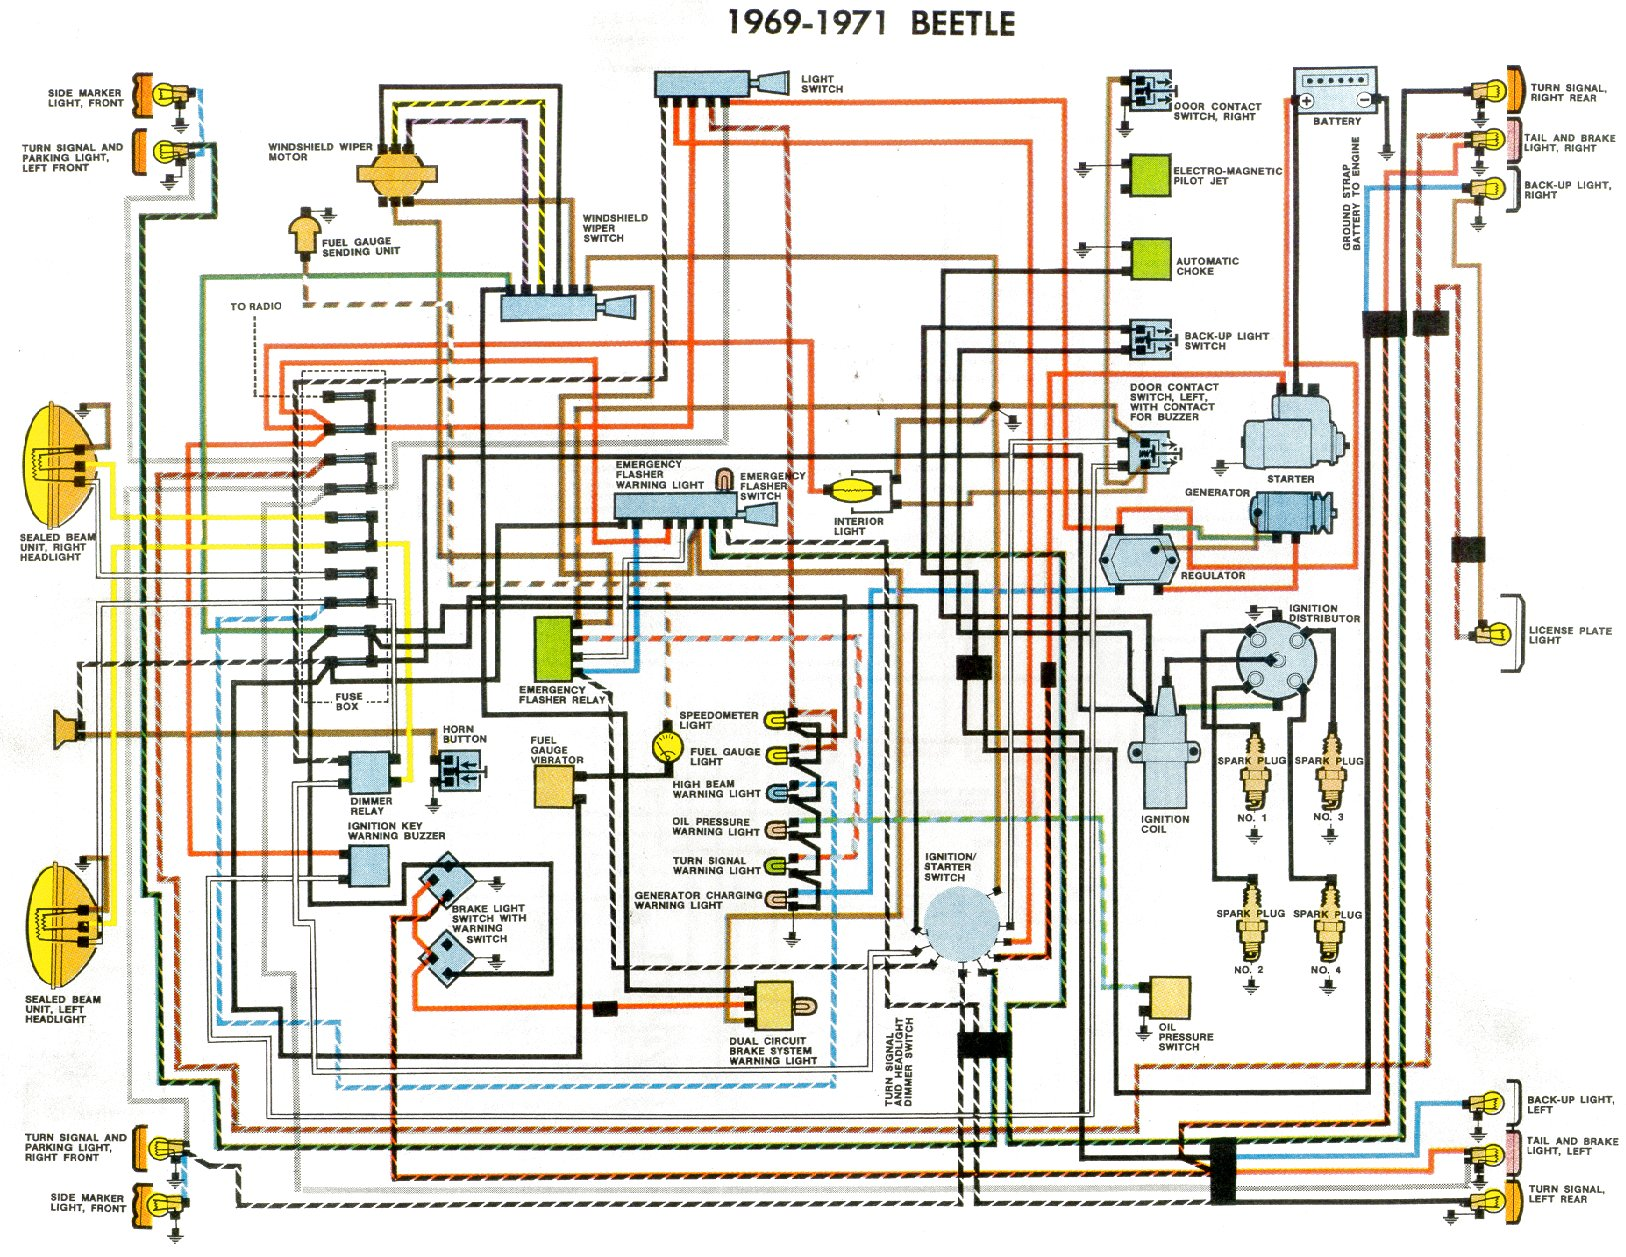 VW 69 71 vwtyp1 com 1972 beetle wiring diagram at bayanpartner.co